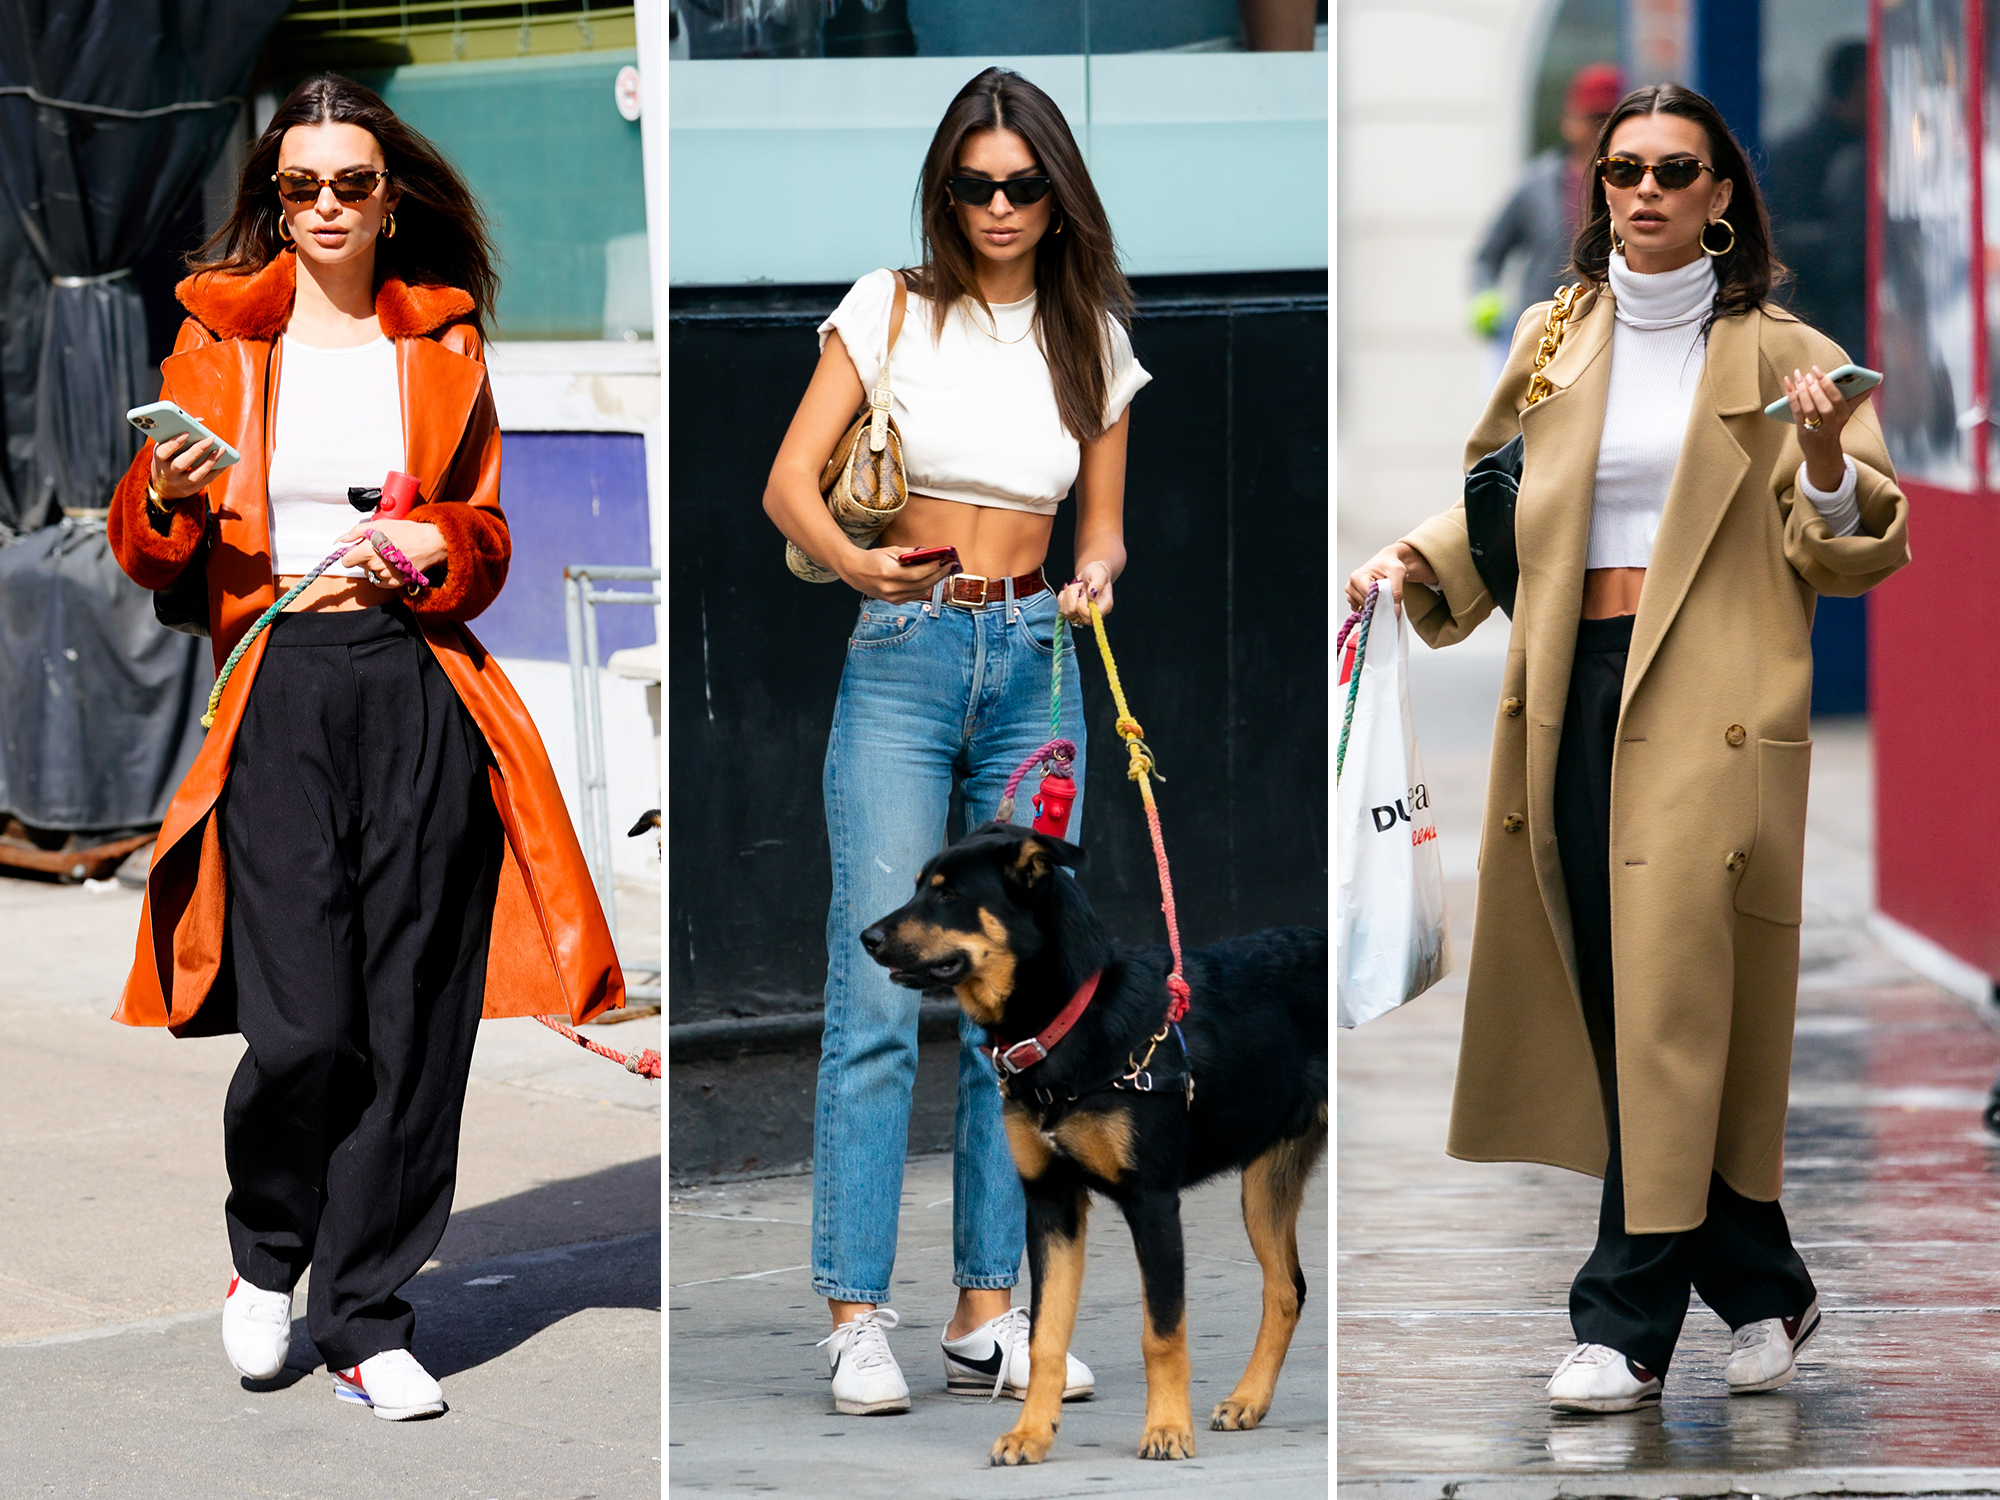 ECOMM: The Already Affordable Sneakers Emily Ratajkowski Wears With Everything Are on Sale